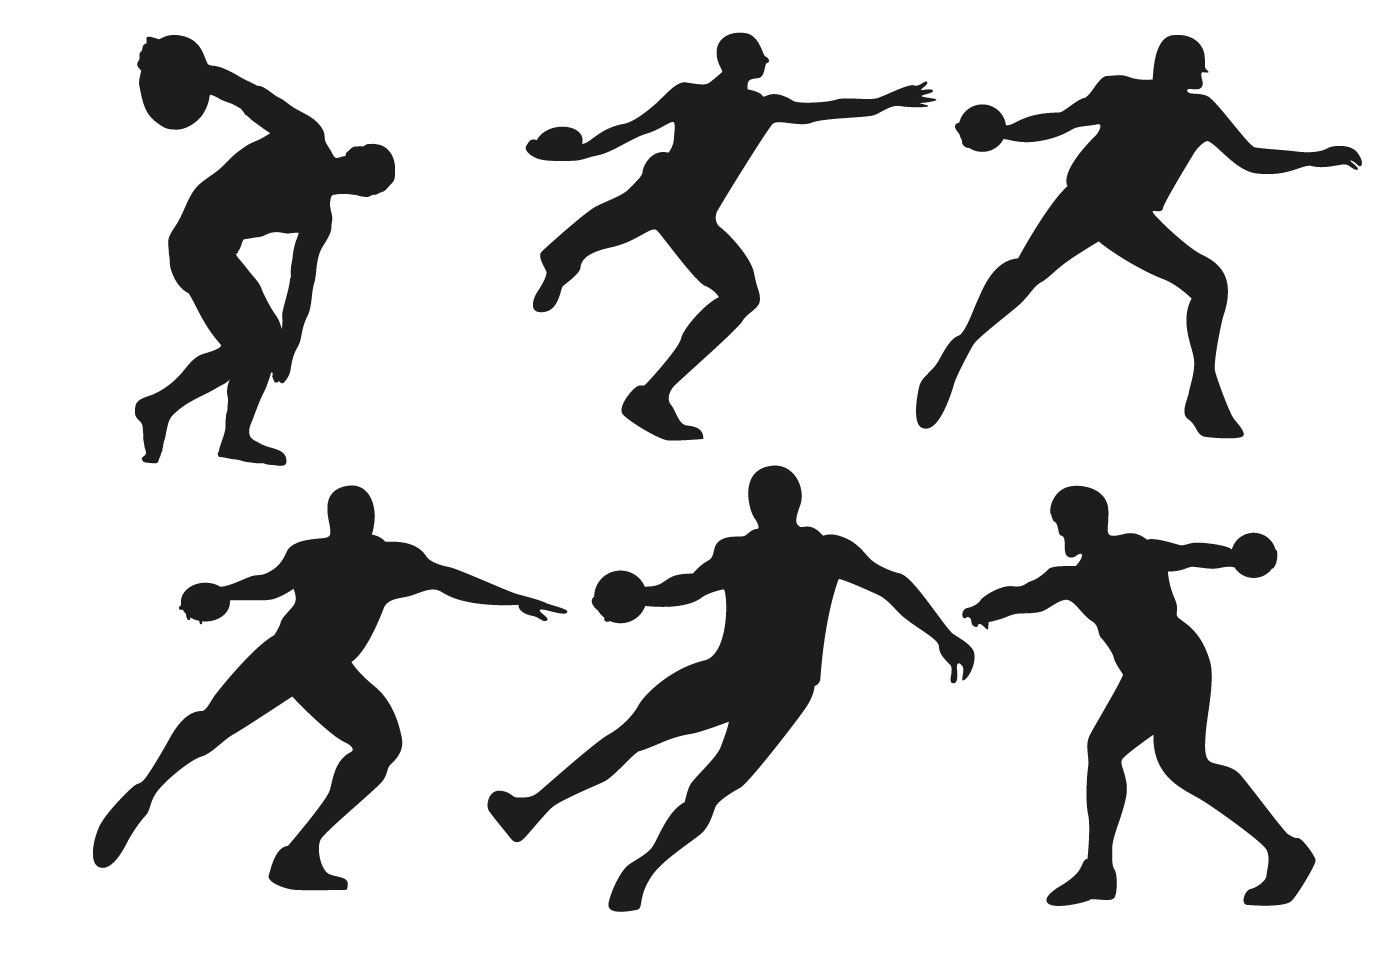 Discus thrower silhouette Clipart | k43555435 | Fotosearch |Discus Thrower Silhouette